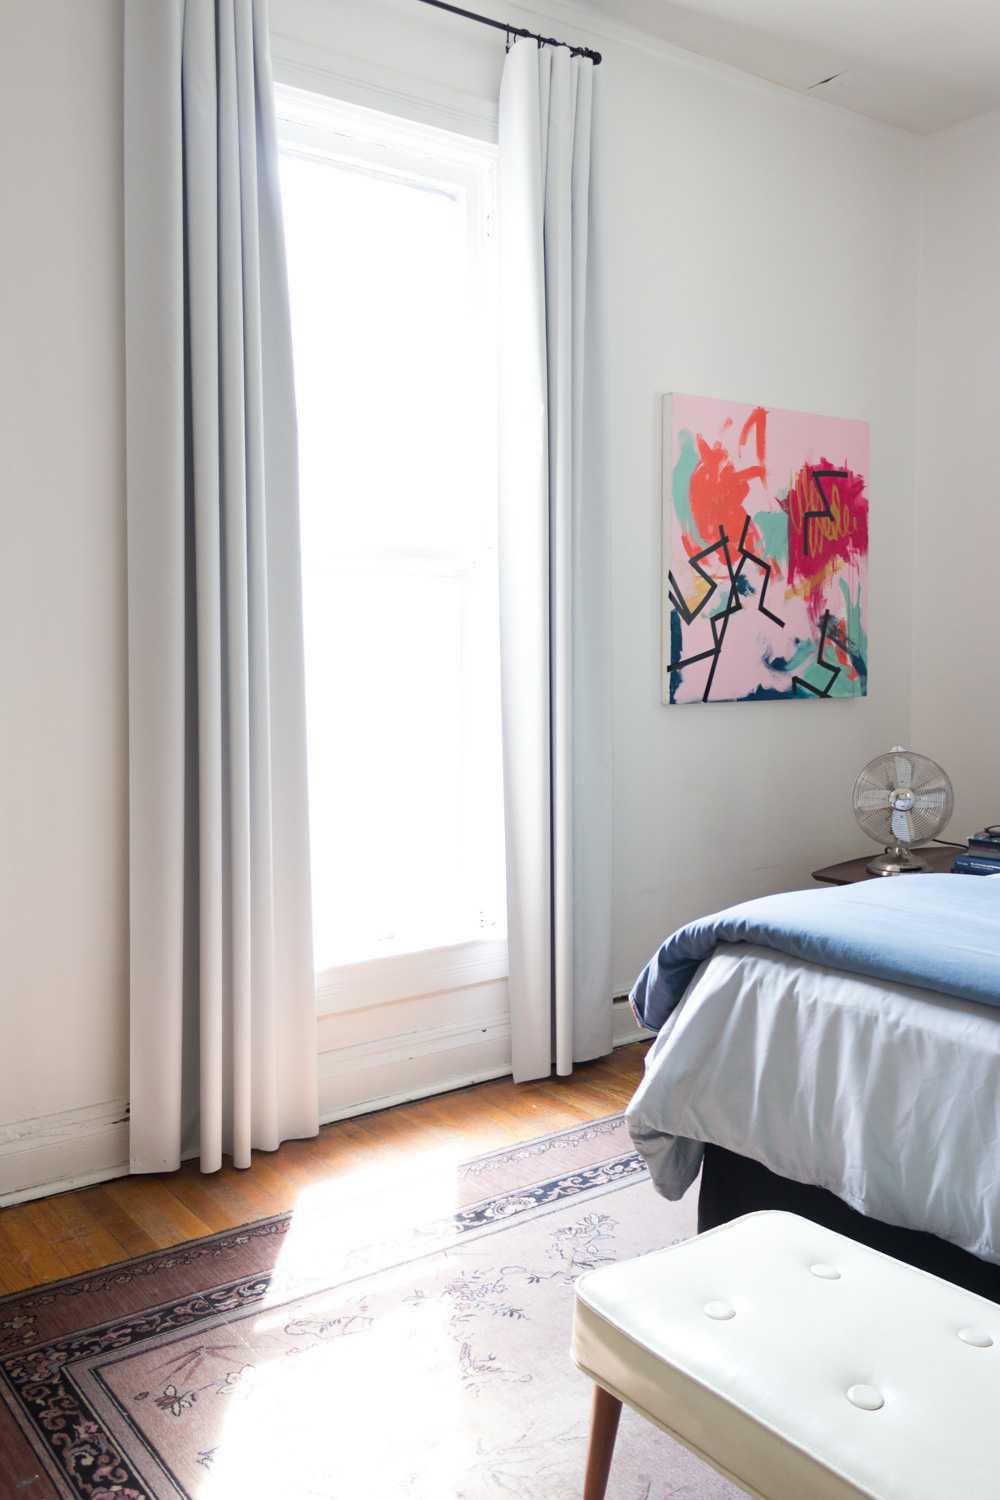 Regency Bedroom with Bold Abstract Art